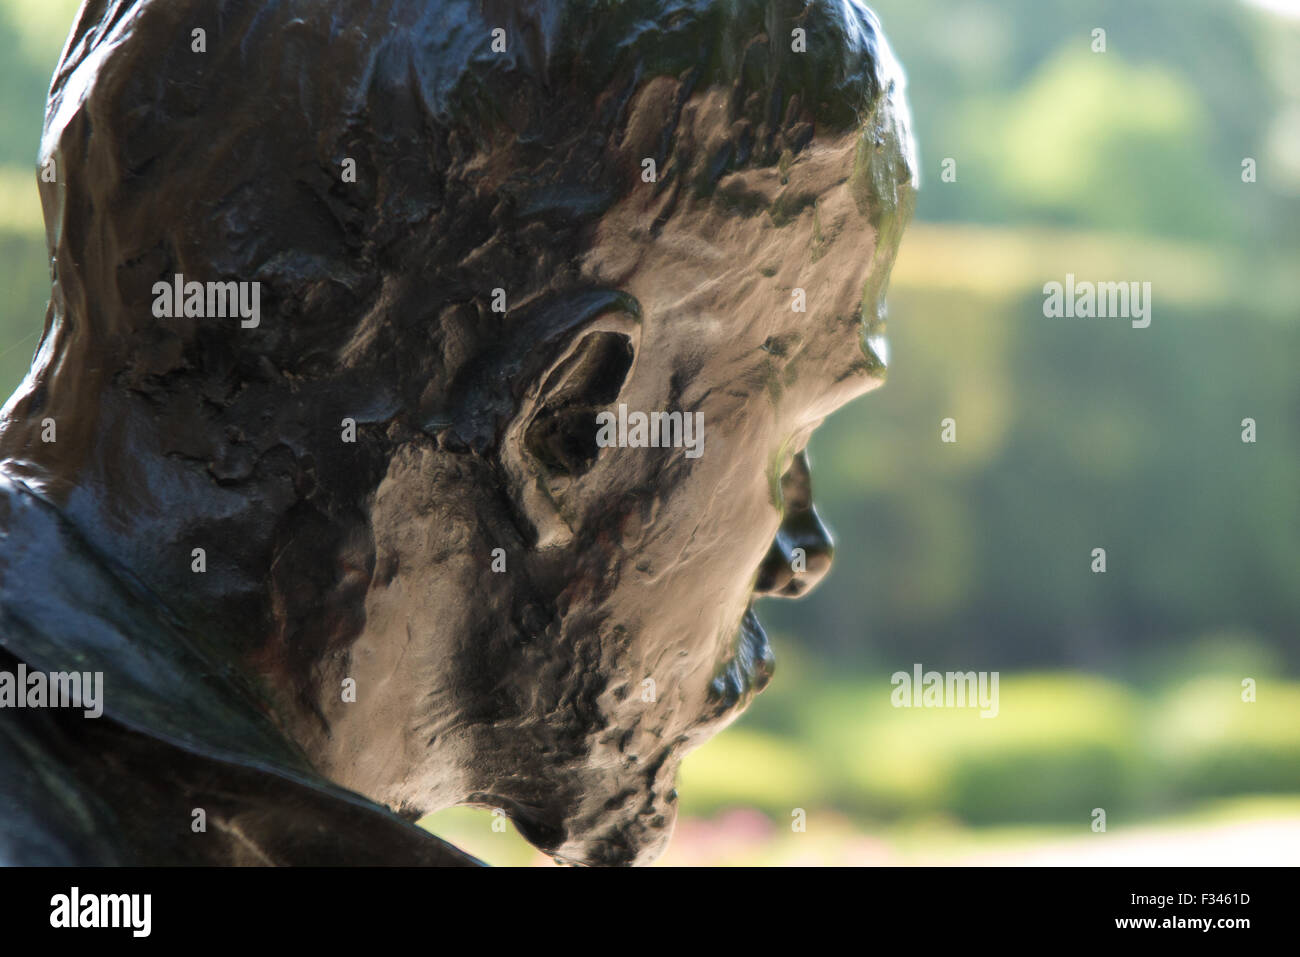 statue, Musee Rodin, Paris, France - Stock Image